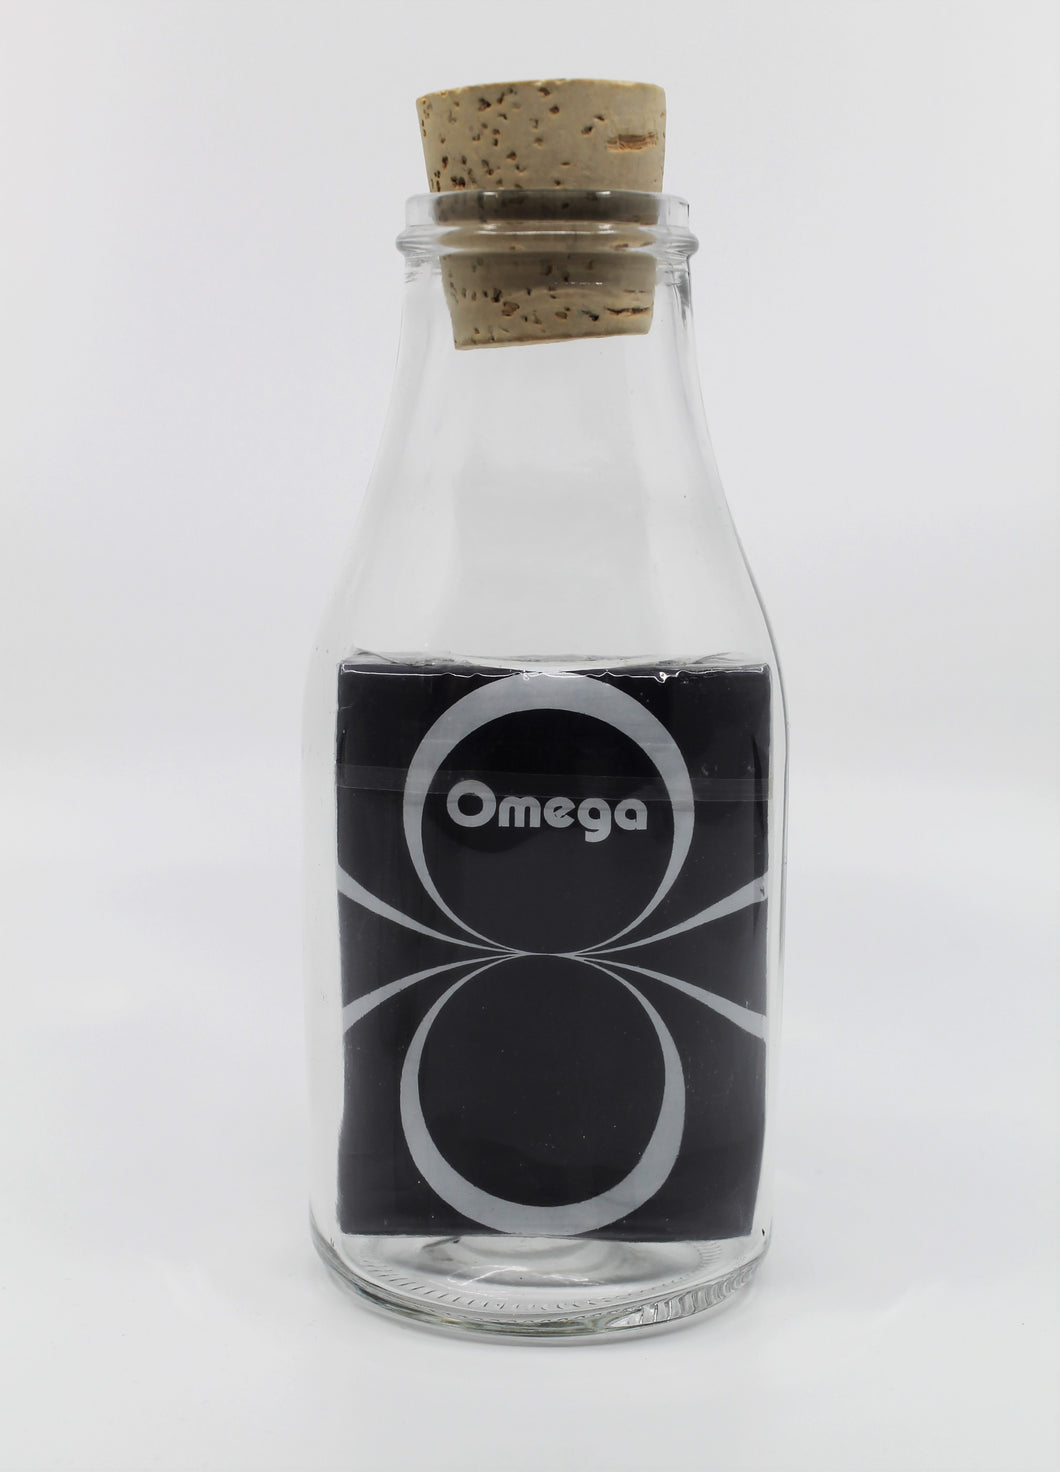 Omega Impossible Bottle (1 of 6)